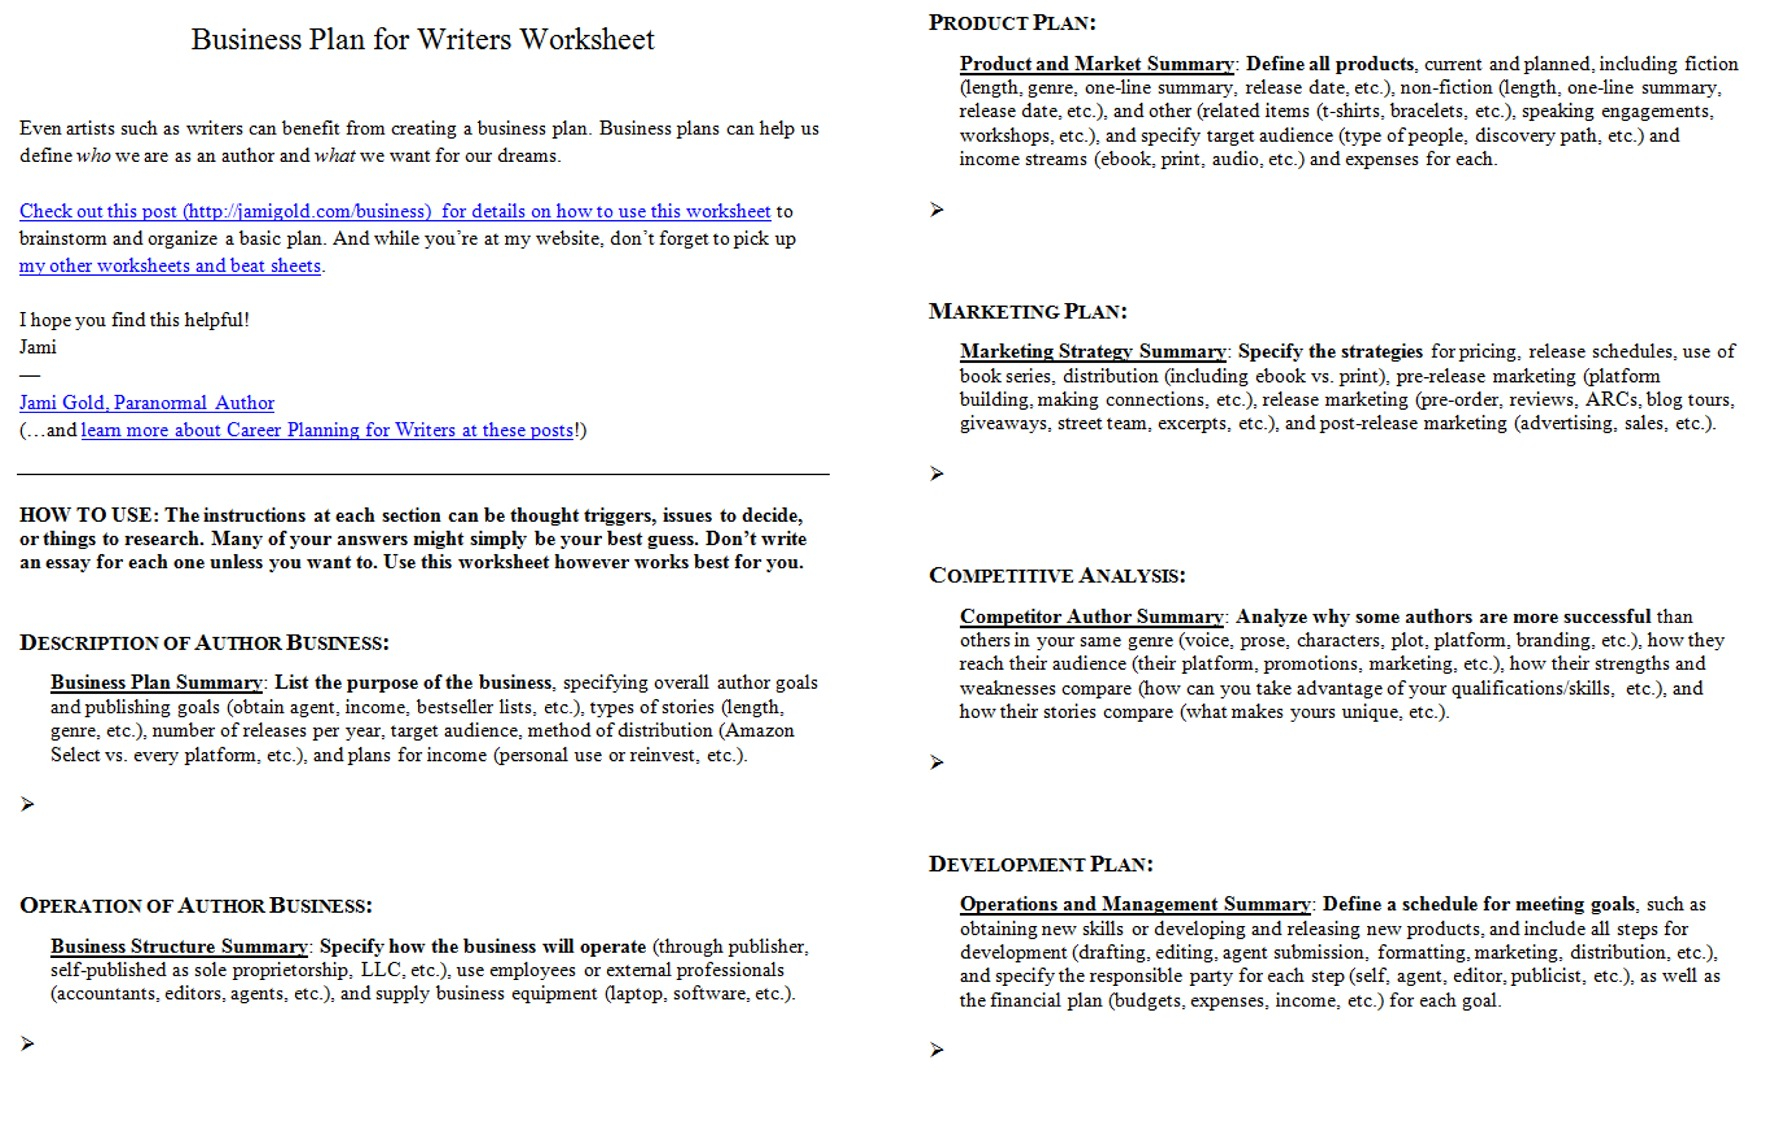 Aldiablosus  Ravishing Worksheets For Writers  Jami Gold Paranormal Author With Foxy Screen Shot Of Both Pages Of The Business Plan For Writers Worksheet With Cool Doubles And Halves Worksheets Also Digestive System Worksheets High School In Addition Whole Number Division Worksheets And Polygon Shapes Worksheets As Well As Synonyms And Antonyms Worksheet For Grade  Additionally Printable Math Worksheets For Preschool From Jamigoldcom With Aldiablosus  Foxy Worksheets For Writers  Jami Gold Paranormal Author With Cool Screen Shot Of Both Pages Of The Business Plan For Writers Worksheet And Ravishing Doubles And Halves Worksheets Also Digestive System Worksheets High School In Addition Whole Number Division Worksheets From Jamigoldcom